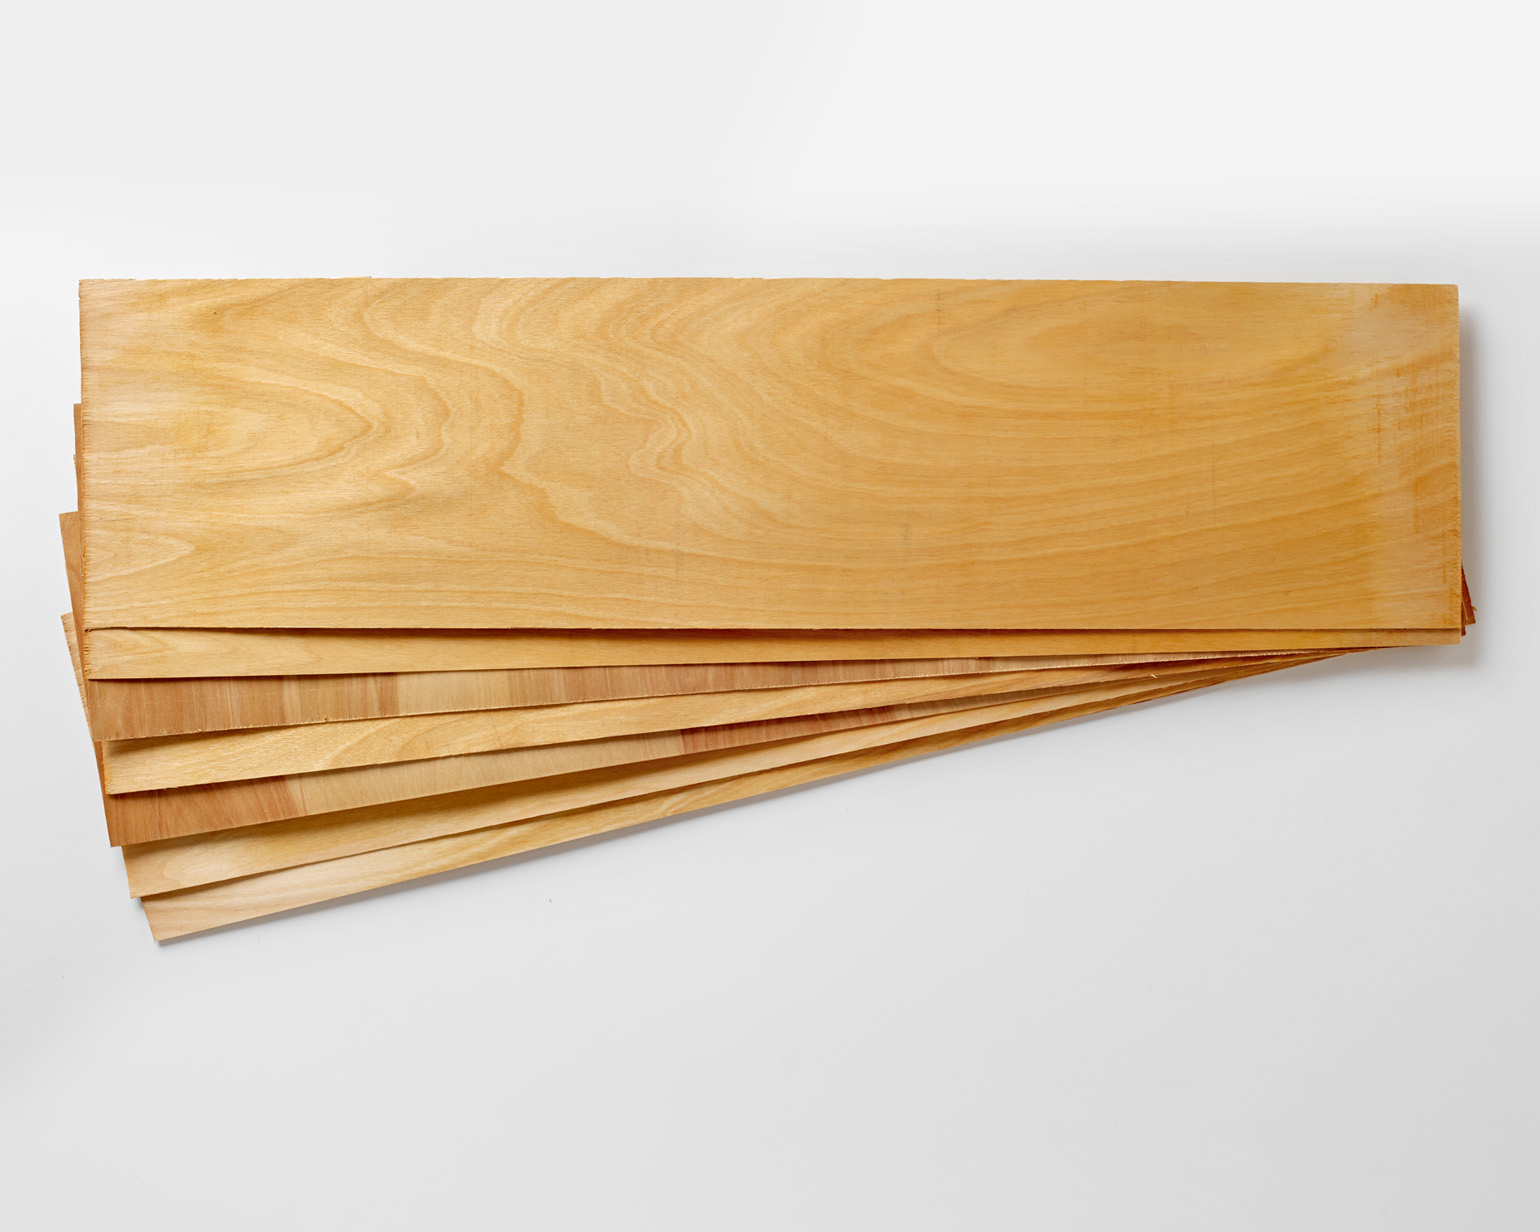 lbb07-birch-long-board-veneer-1540.jpg